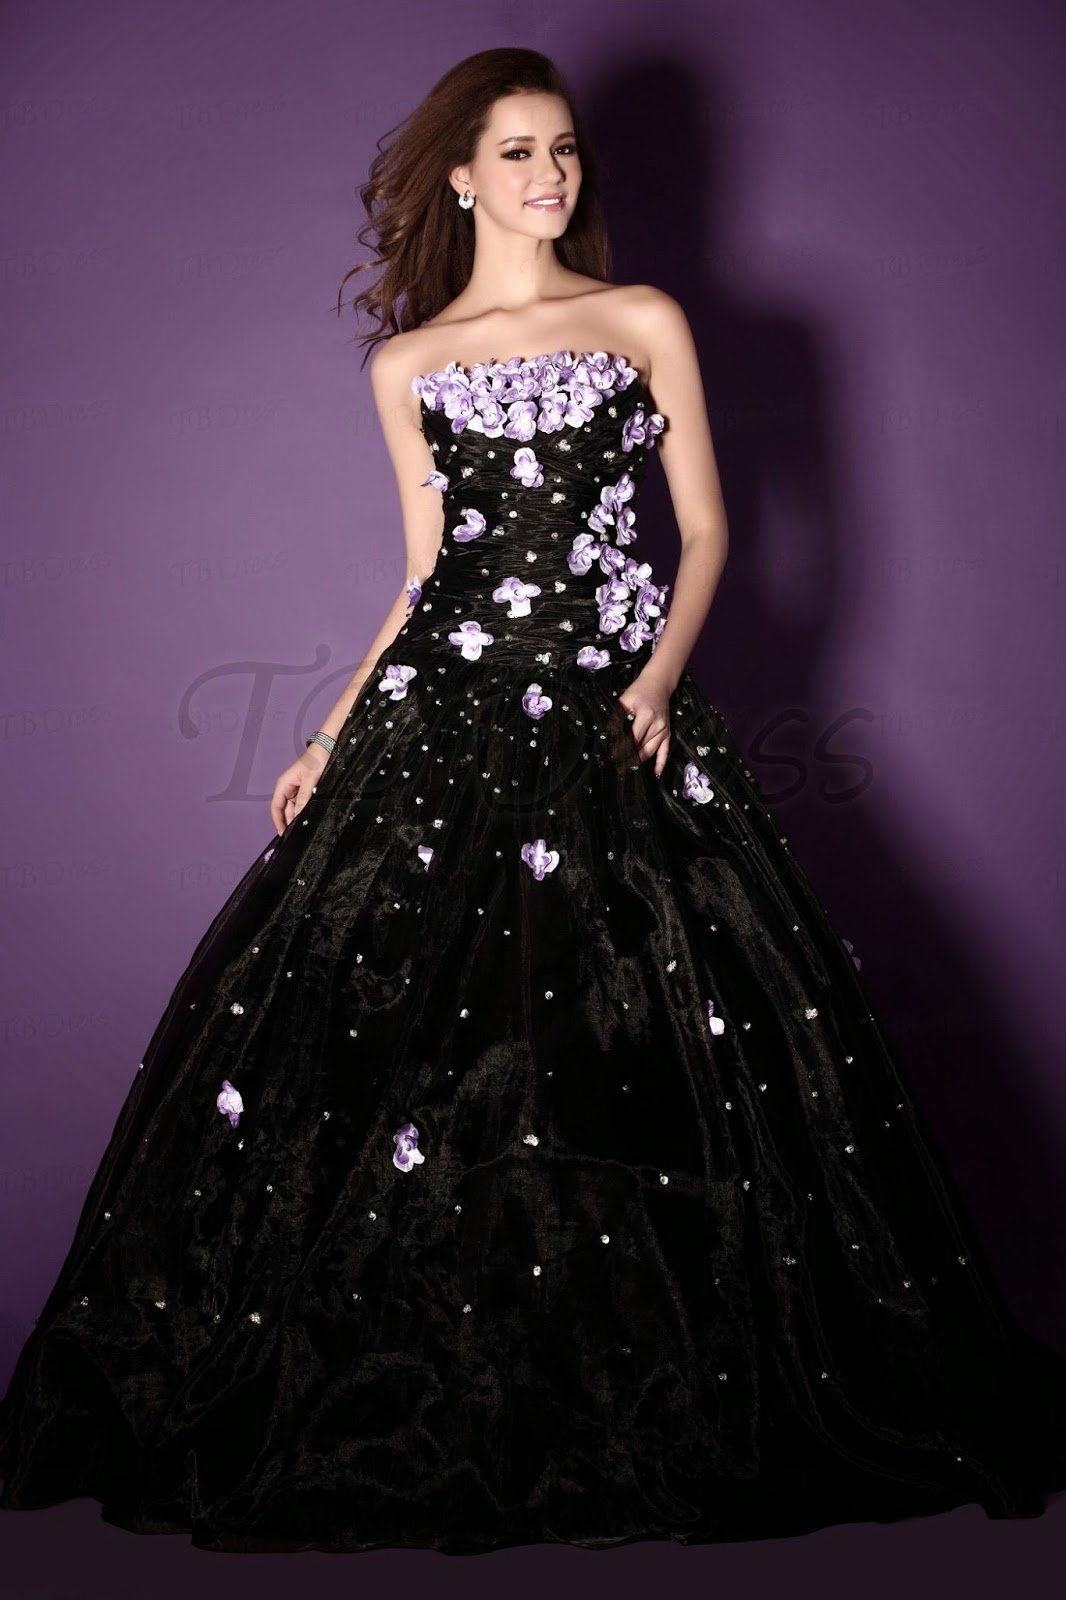 http://www.tbdress.com/product/New-Style-Ball-Gown-Strapless-Floor-Length-Sandras-Ball-Gown-Prom-Dress-9690812.html